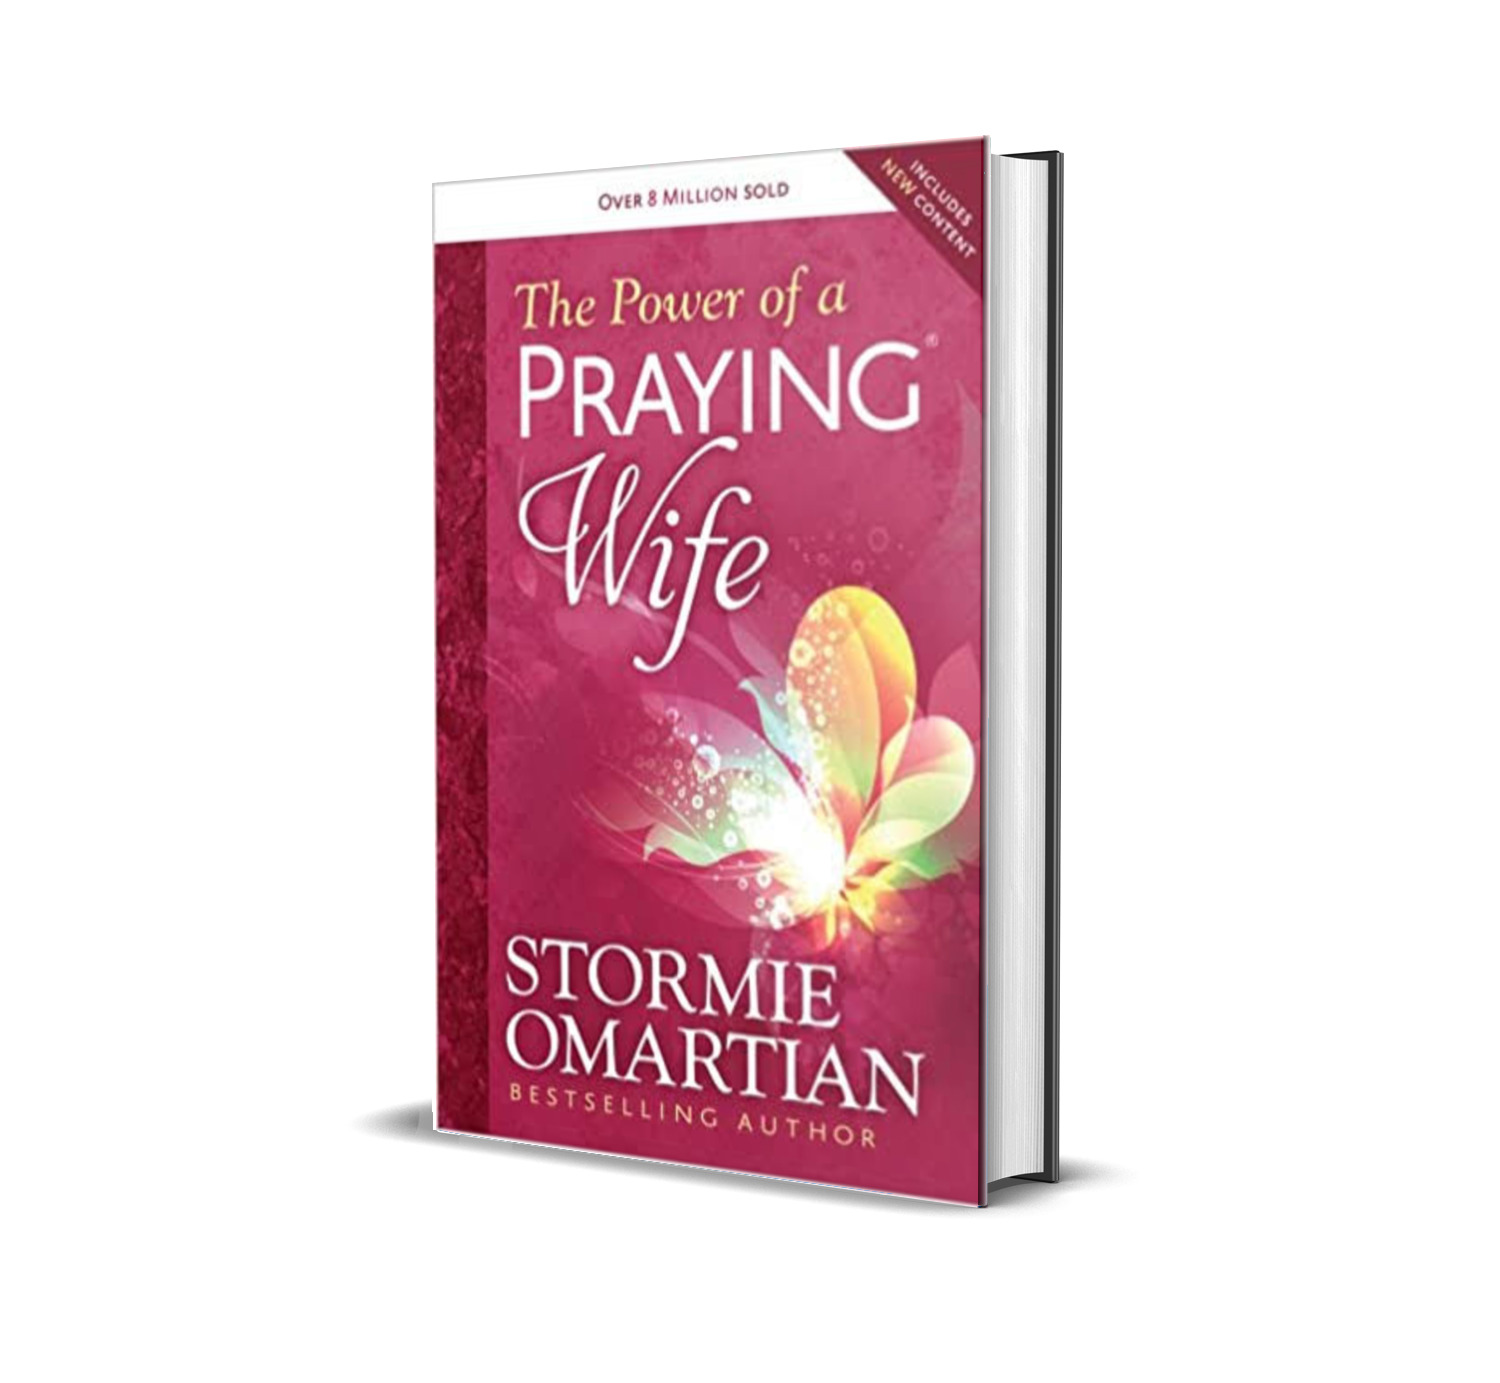 The power of a praying wife- Stormie Omartian